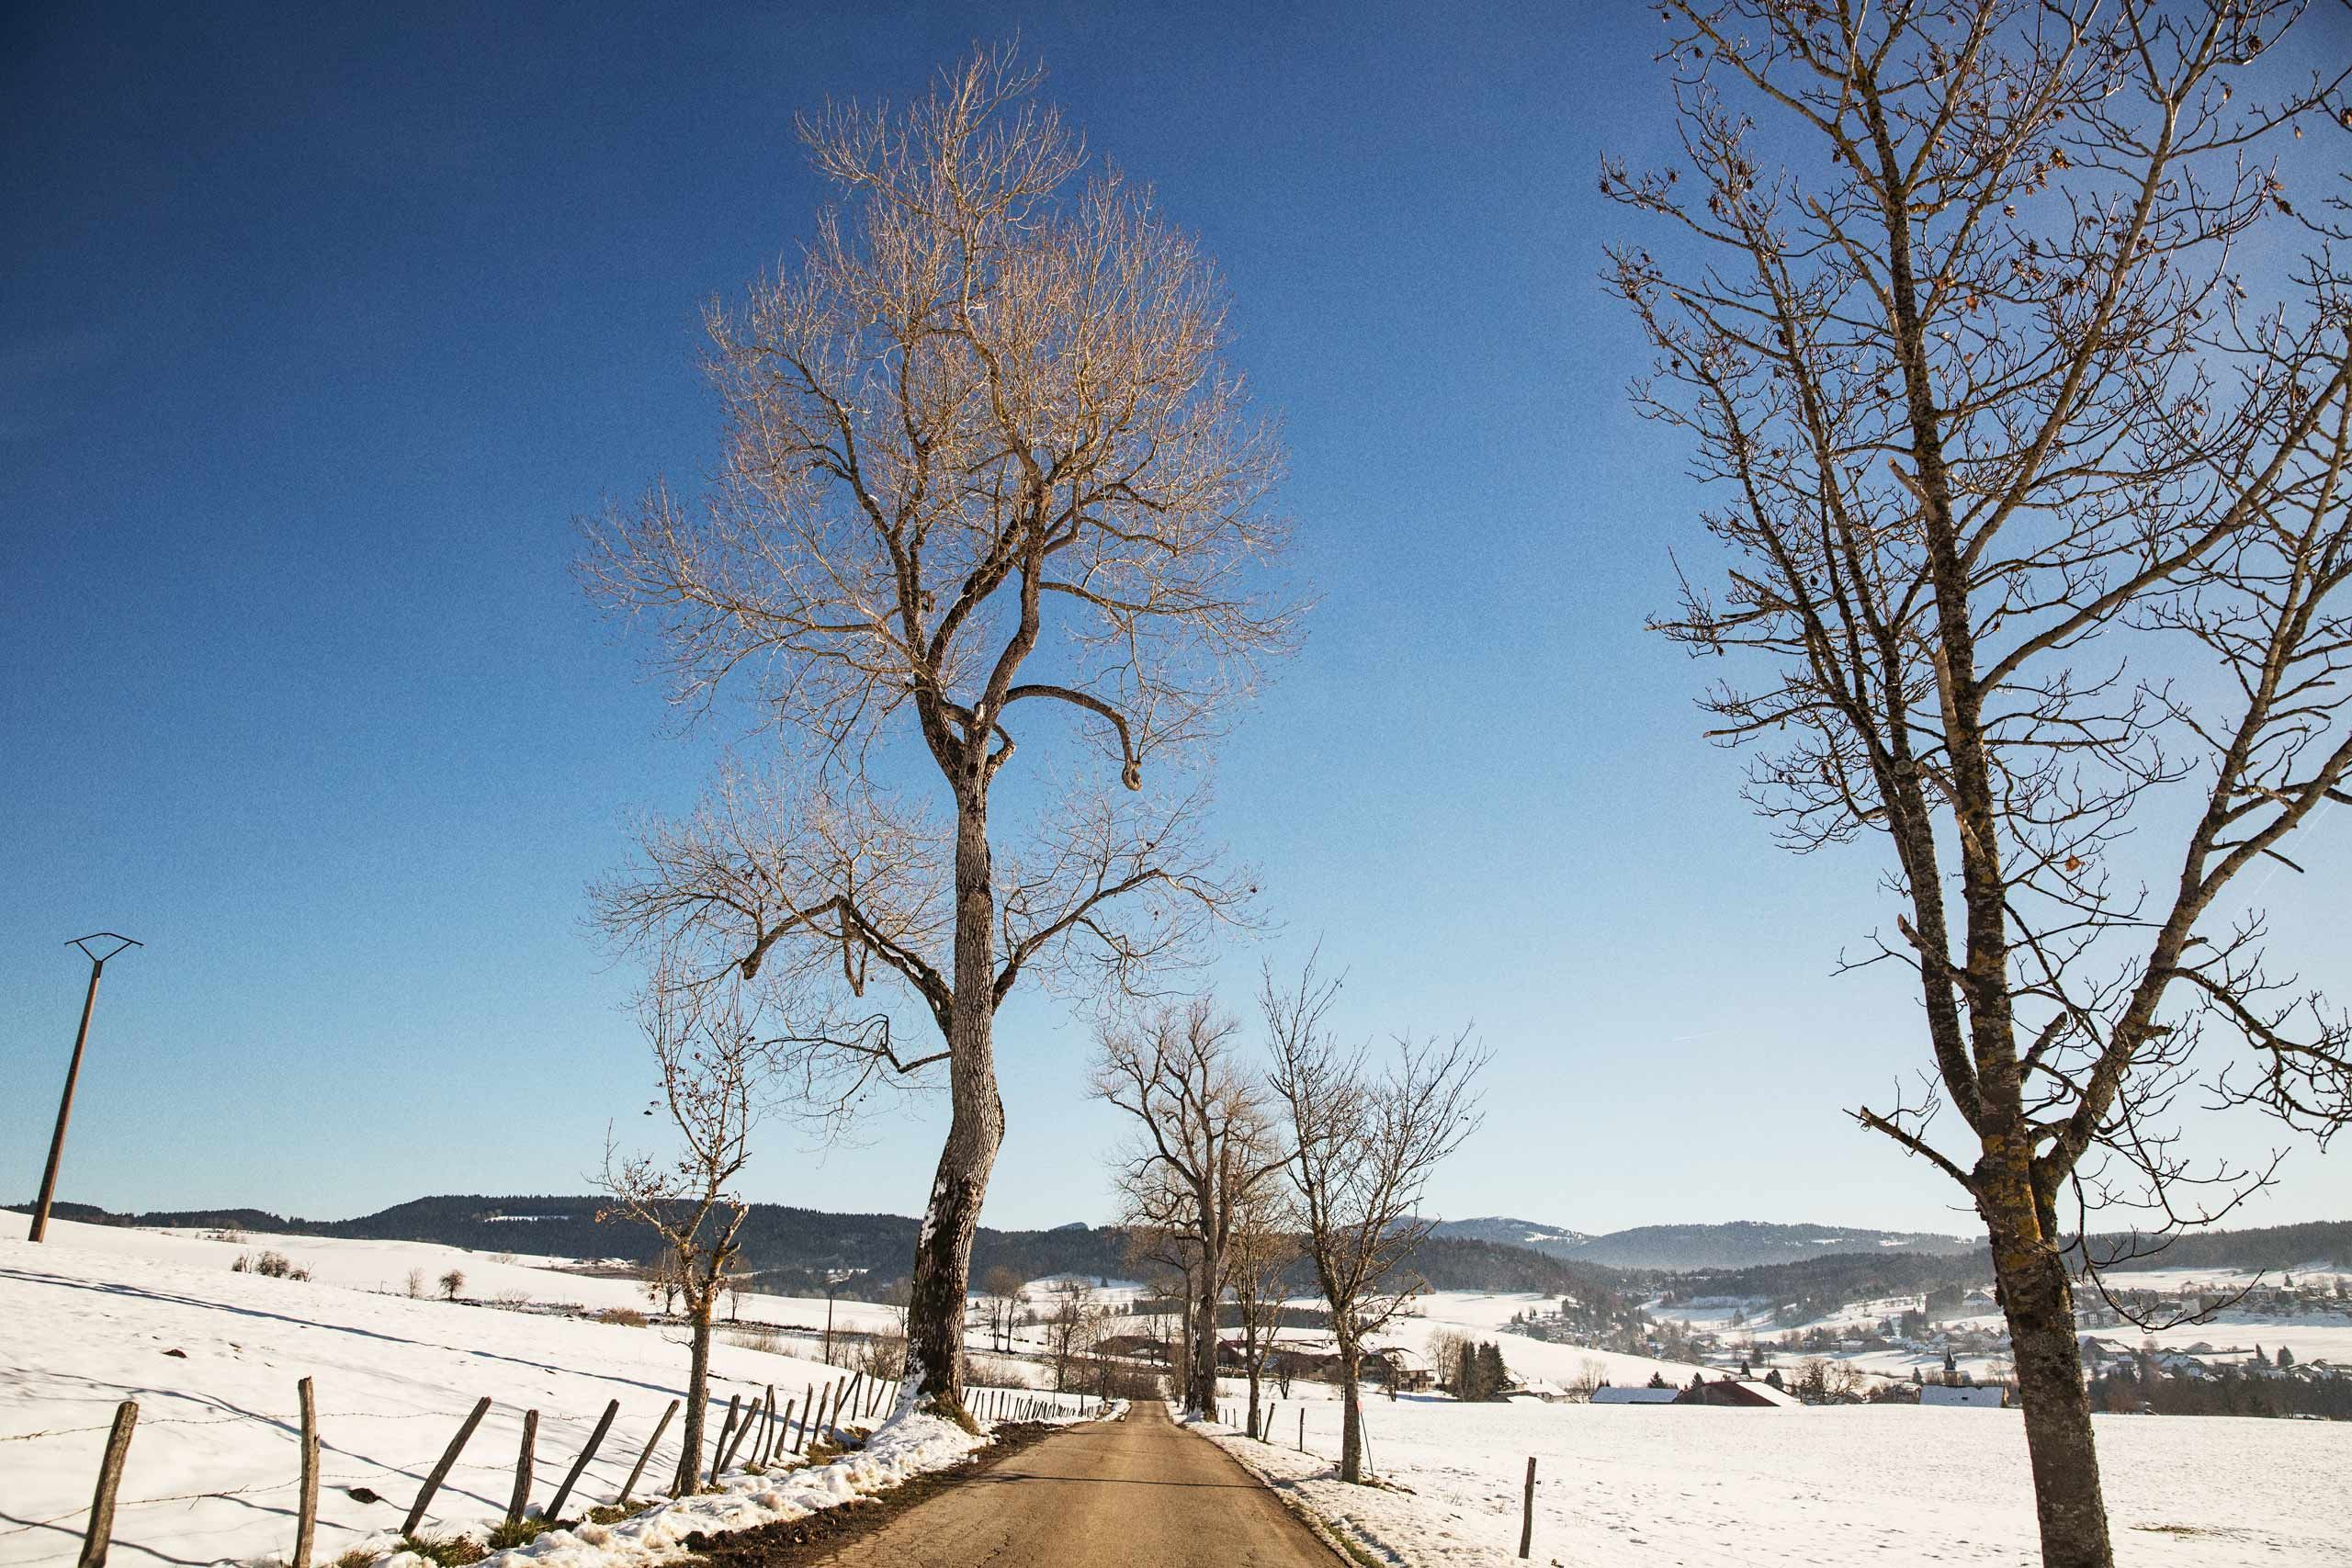 A Leafless Tree Along Side a Road